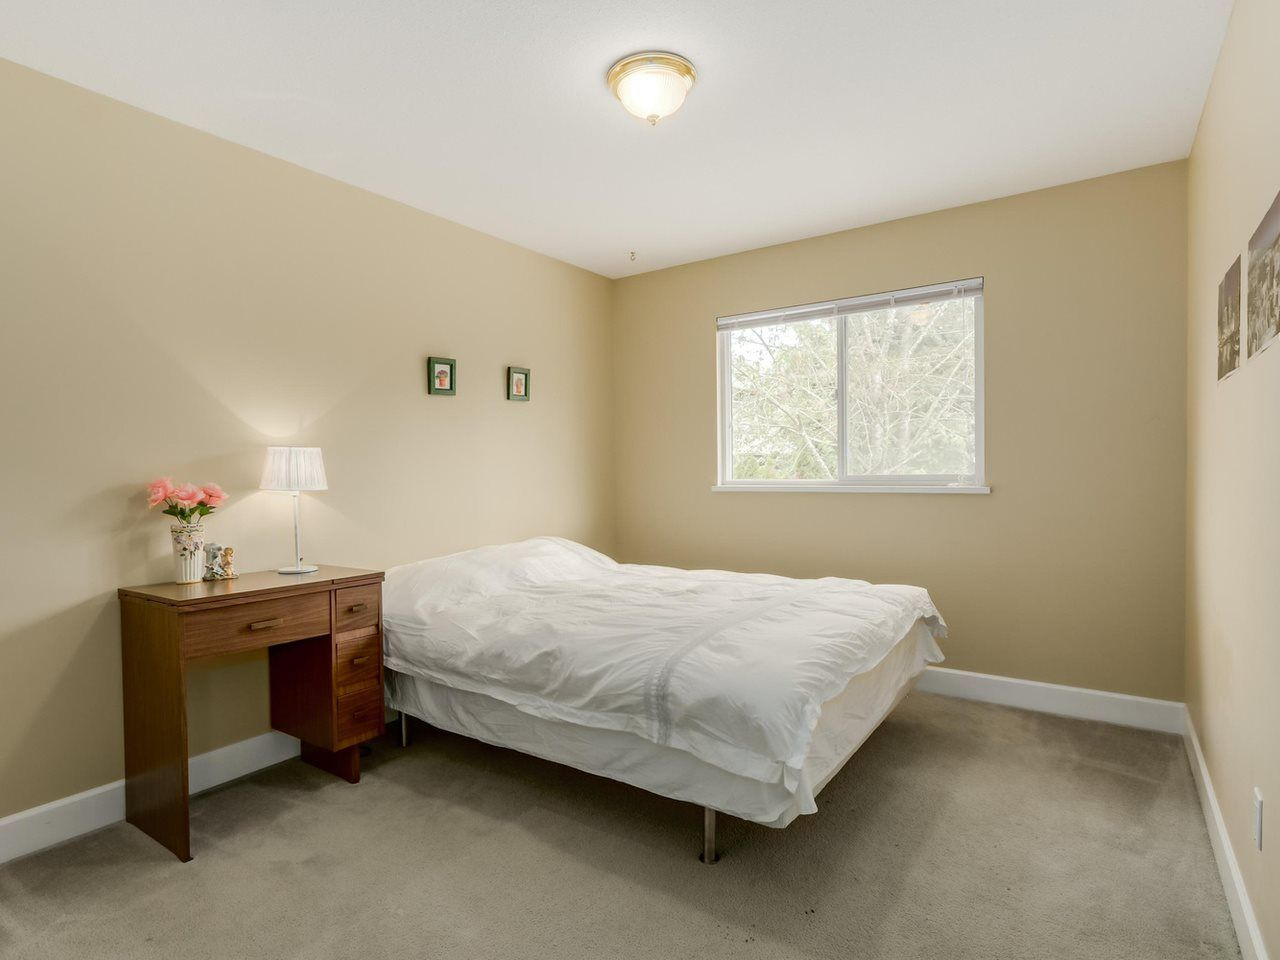 """Photo 13: Photos: 8238 149 Street in Surrey: Bear Creek Green Timbers House for sale in """"SHAUGHNESSY"""" : MLS®# R2078750"""